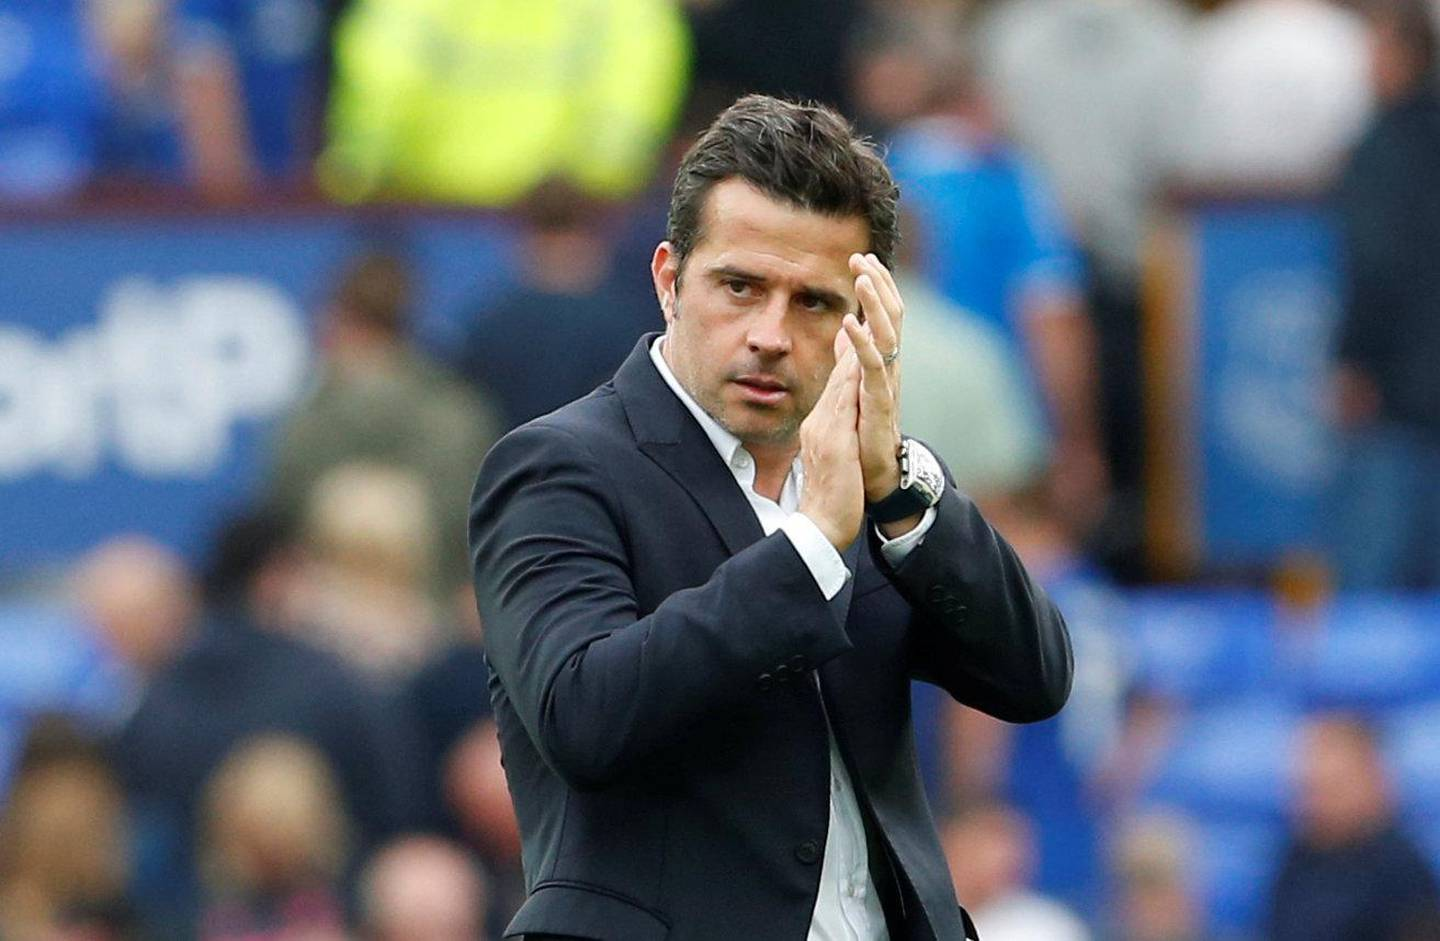 """Soccer Football - Premier League - Everton v Huddersfield Town - Goodison Park, Liverpool, Britain - September 1, 2018  Everton manager Marco Silva speaks applauds fans after the match        Action Images via Reuters/Craig Brough  EDITORIAL USE ONLY. No use with unauthorized audio, video, data, fixture lists, club/league logos or """"live"""" services. Online in-match use limited to 75 images, no video emulation. No use in betting, games or single club/league/player publications.  Please contact your account representative for further details."""